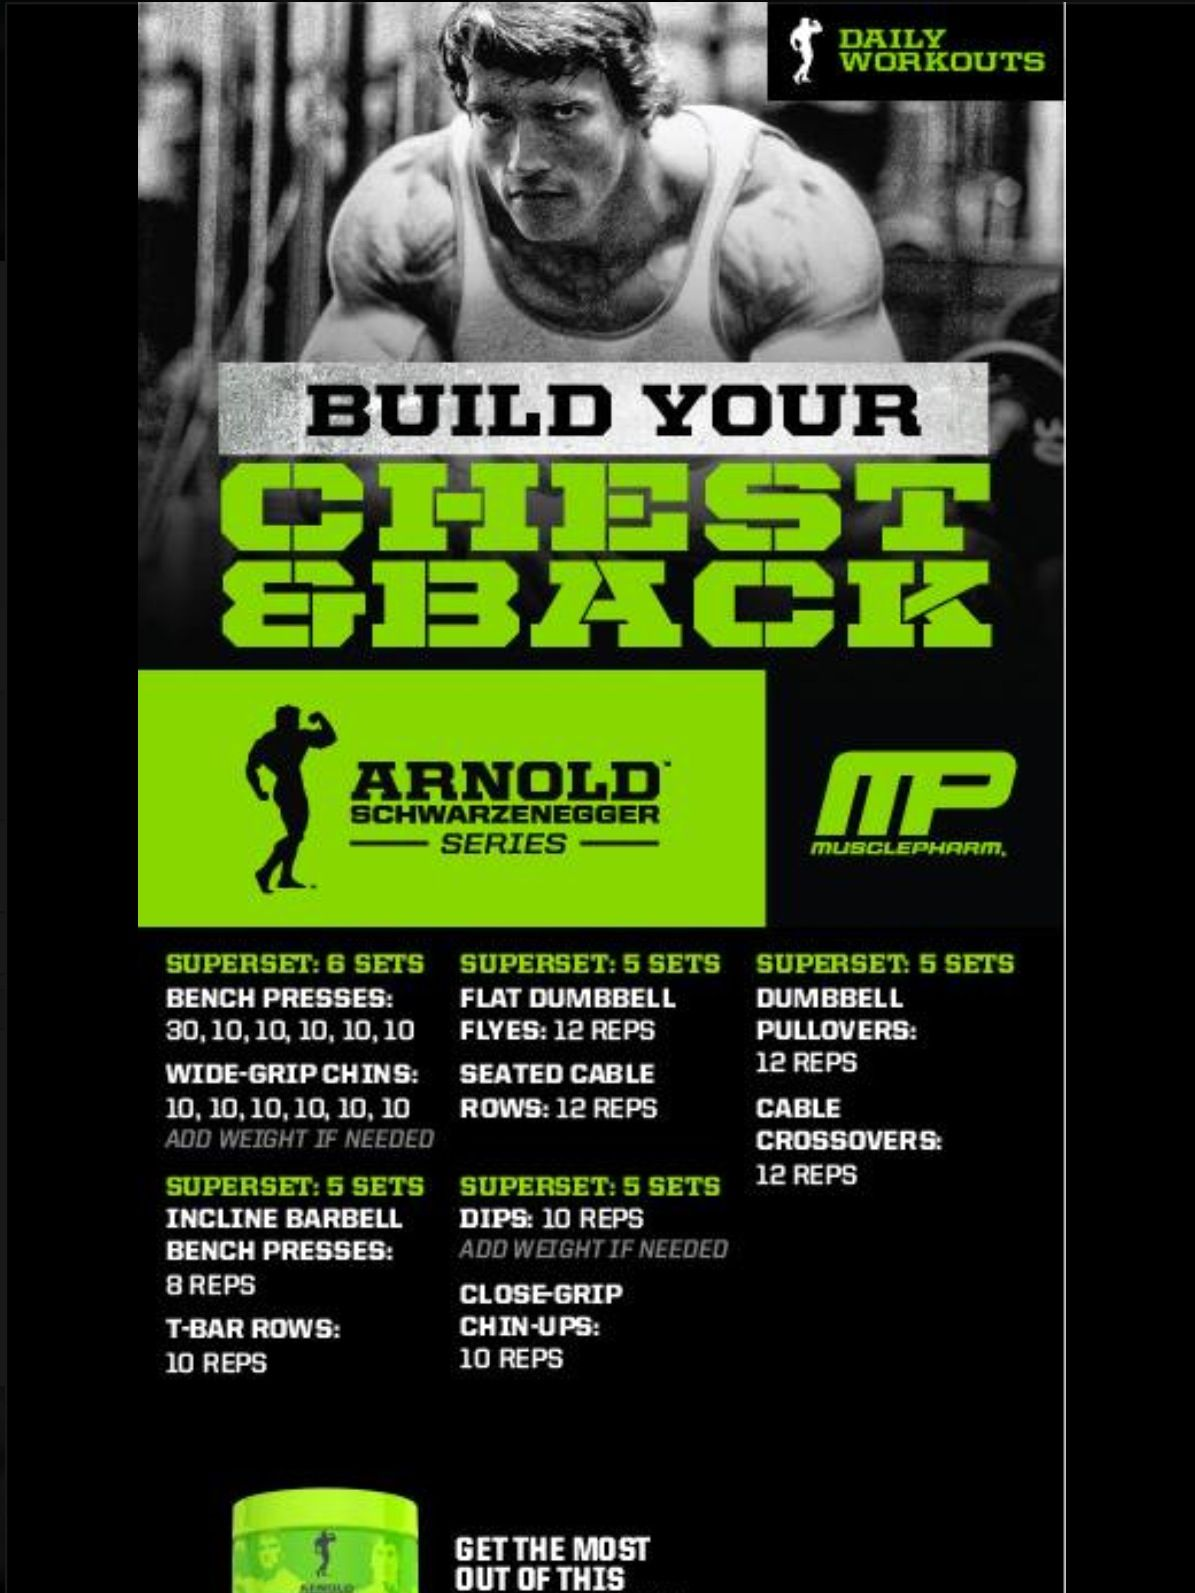 Arnold chest and back workout by musclepharm workout pinterest arnold chest and back workout by musclepharm malvernweather Choice Image